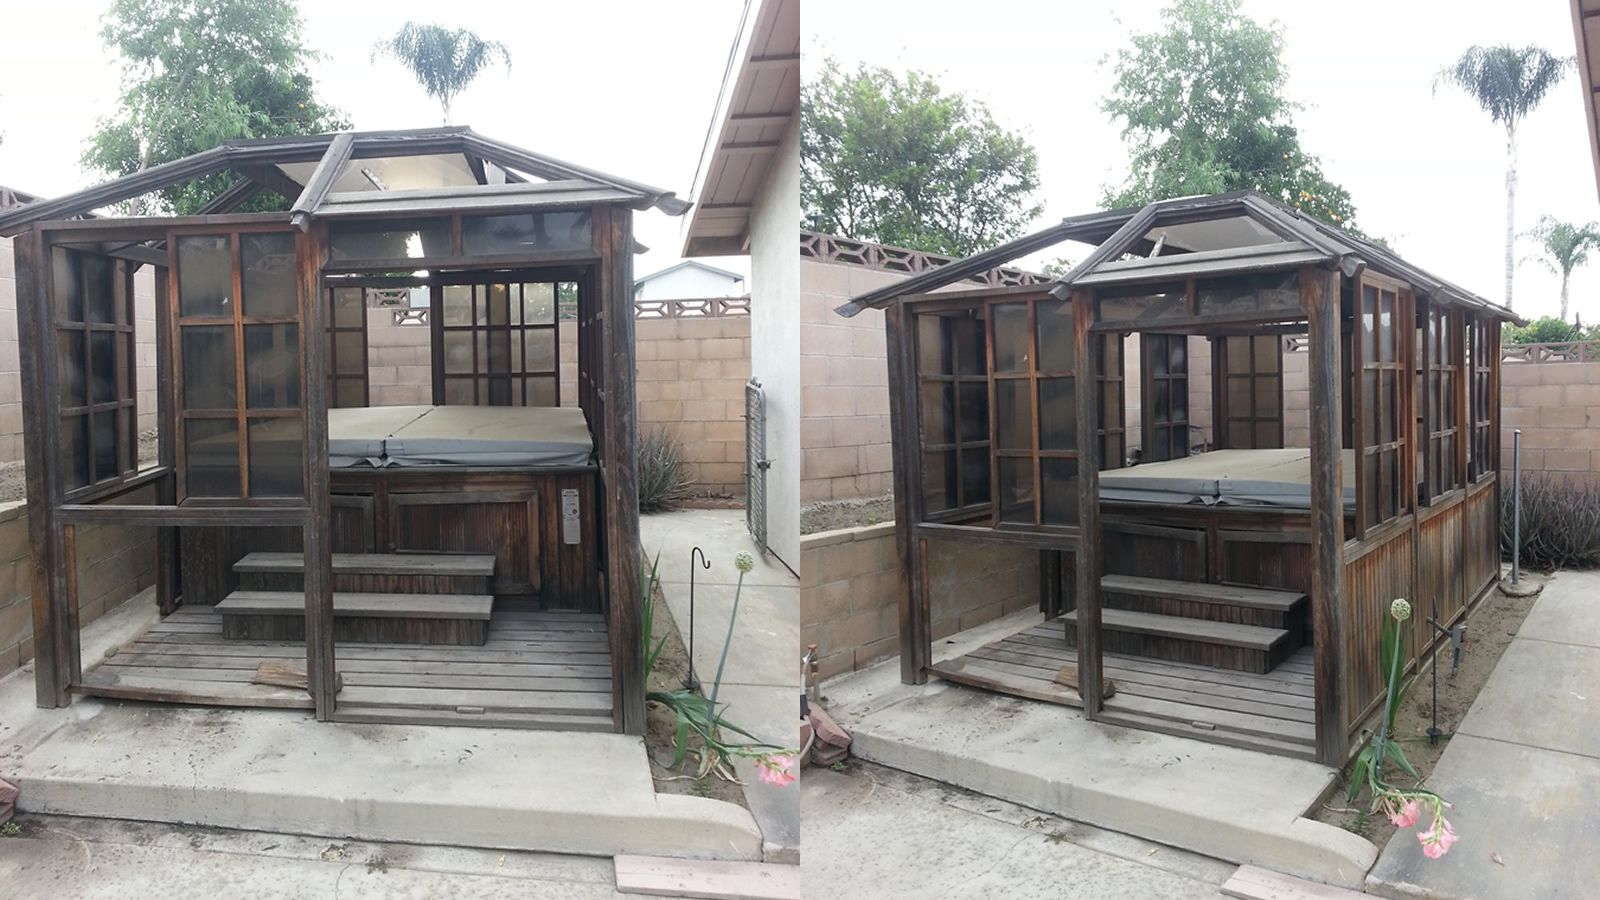 So cal spa removal temecula spa removal company for Cal spa gazebo